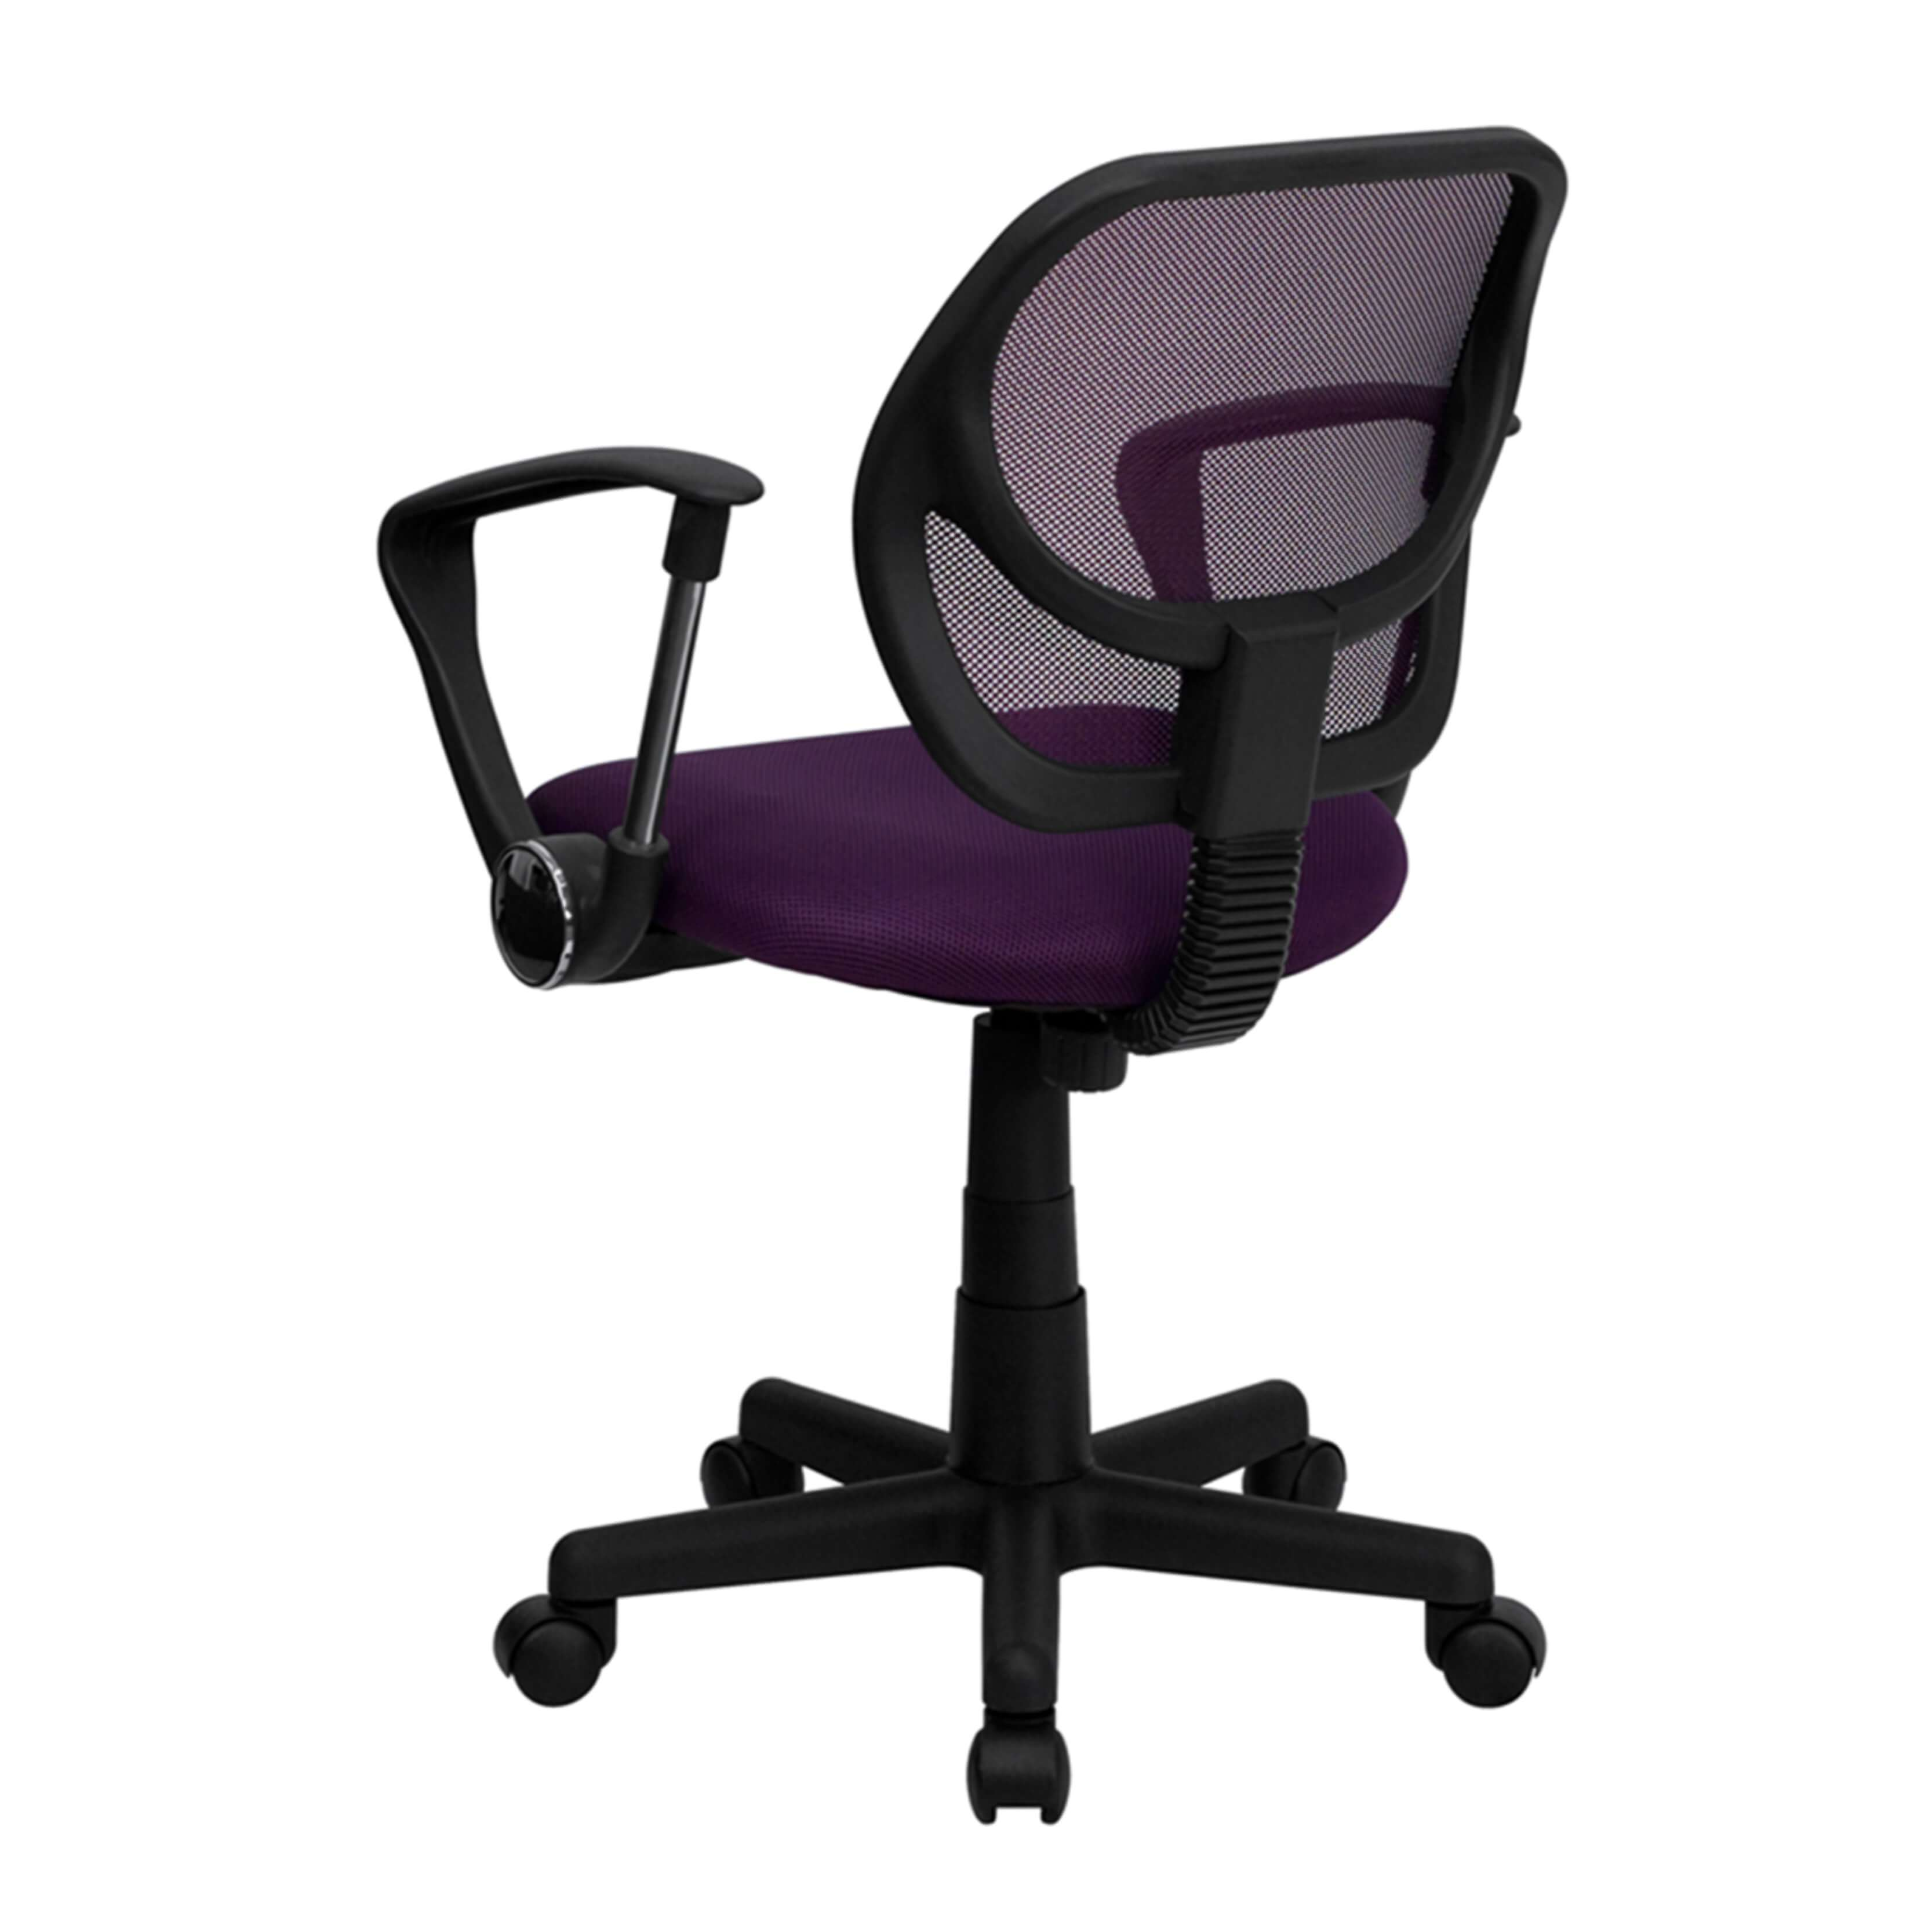 Petite Chairs Aurora Petite Office Chairs